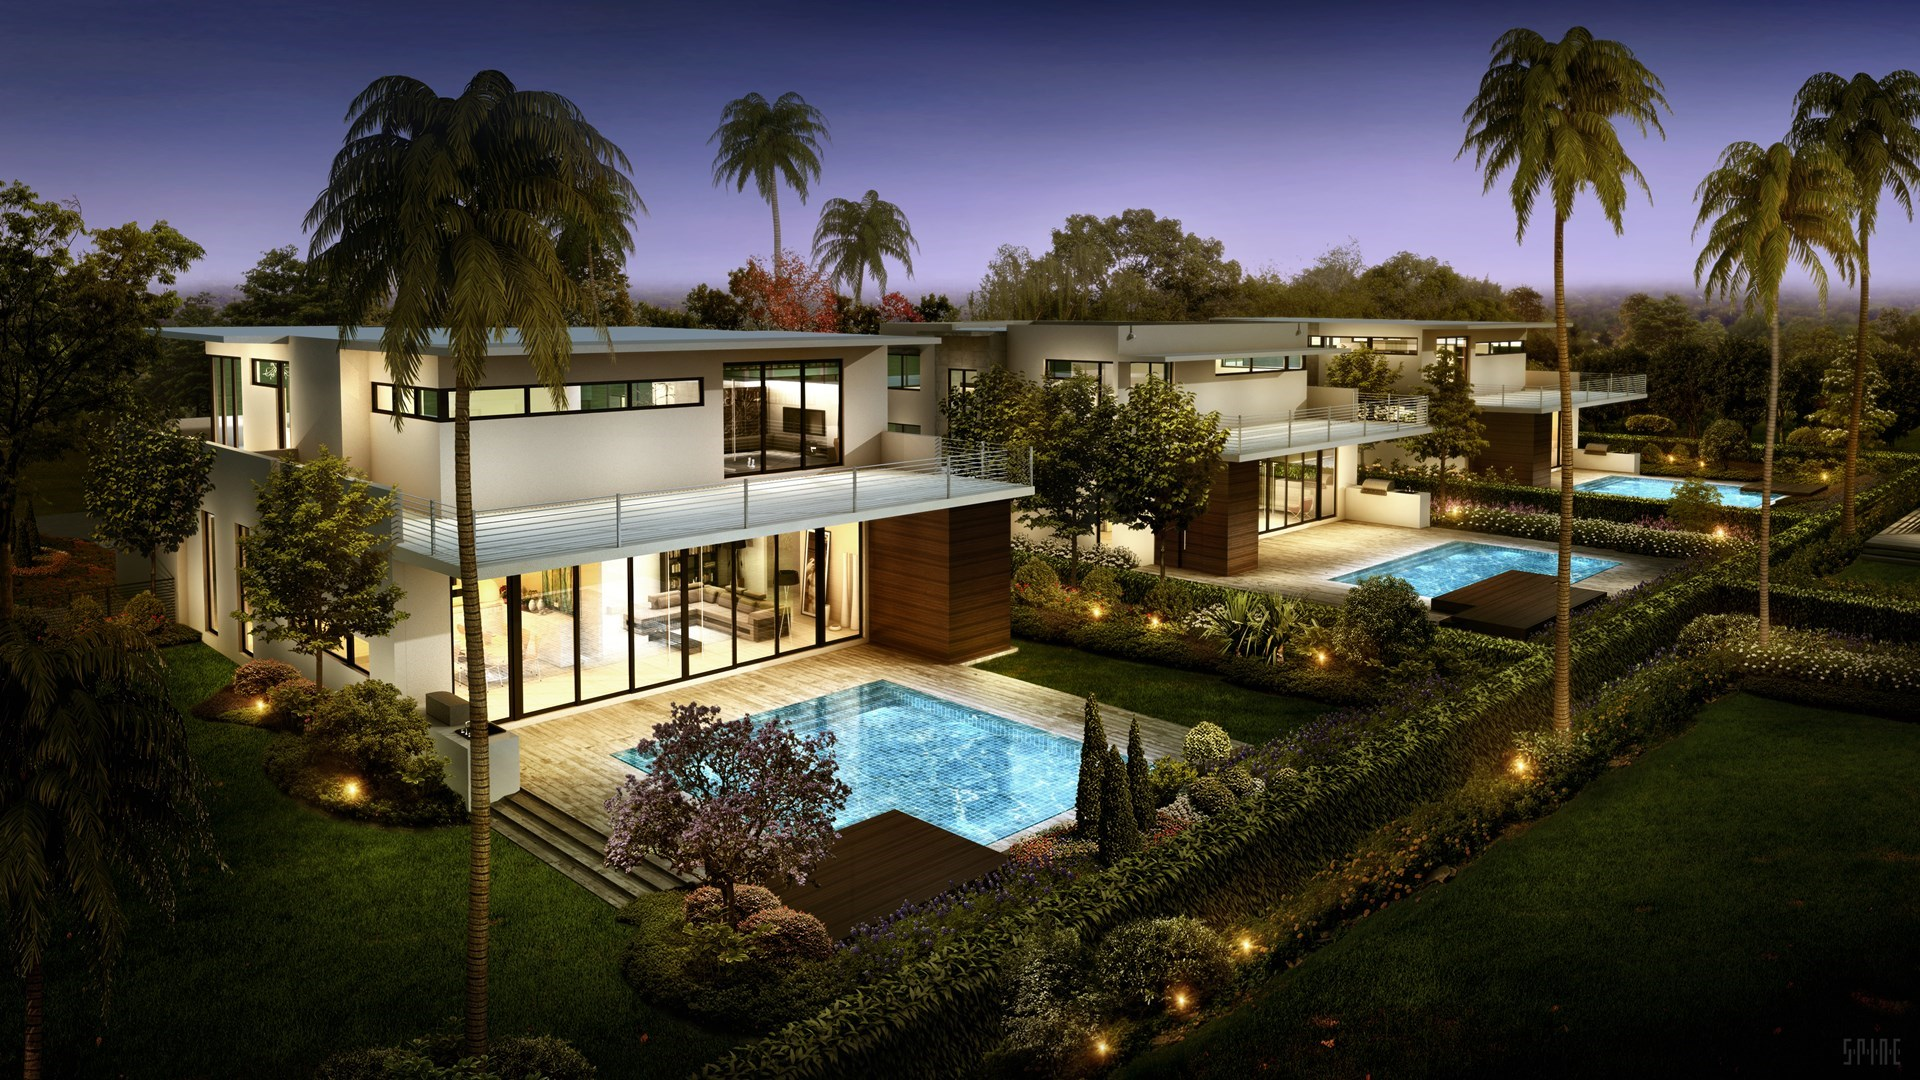 Azure Waterfront Residential Listing Miami An